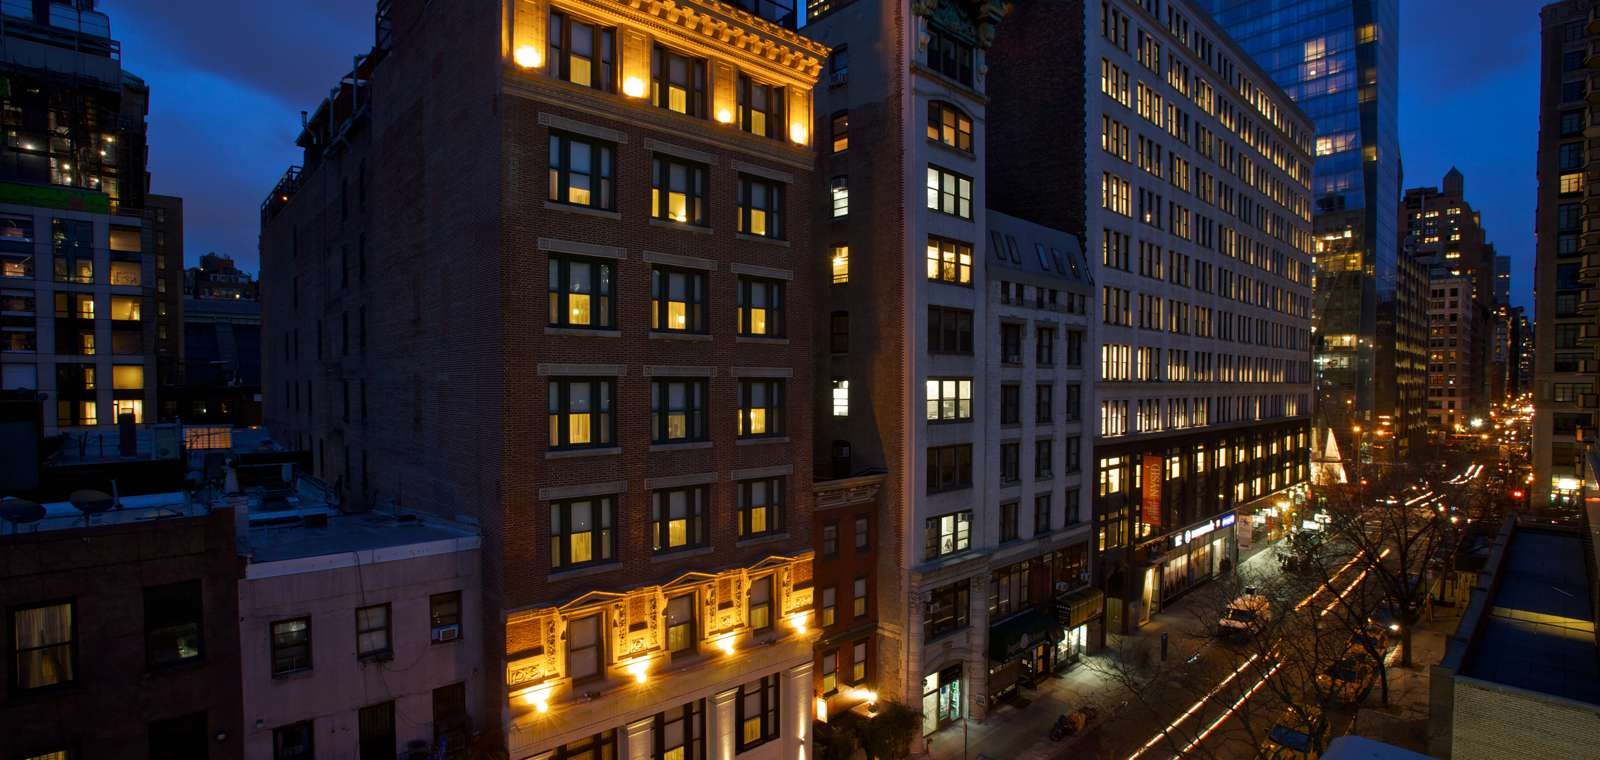 Exterior Of Park South Hotel At Night